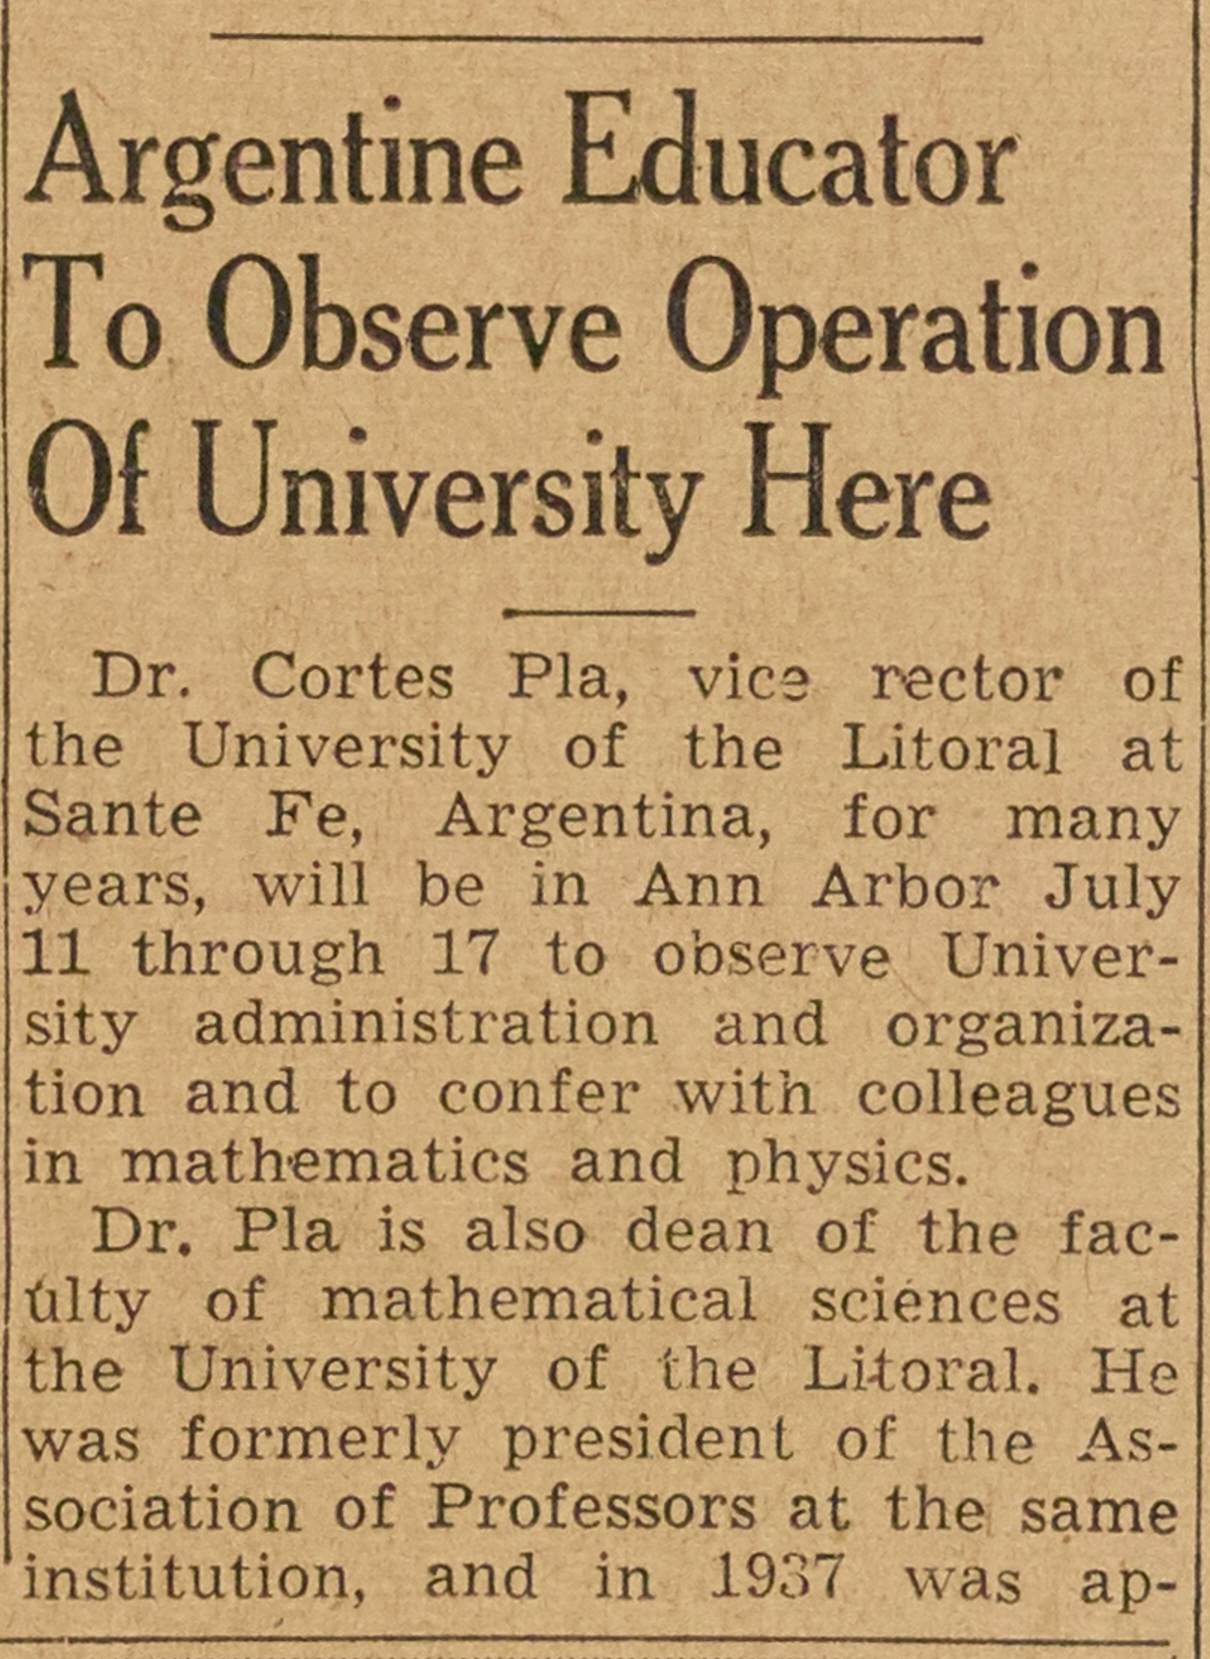 Argentine Educator To Observe Operation Of University Here image